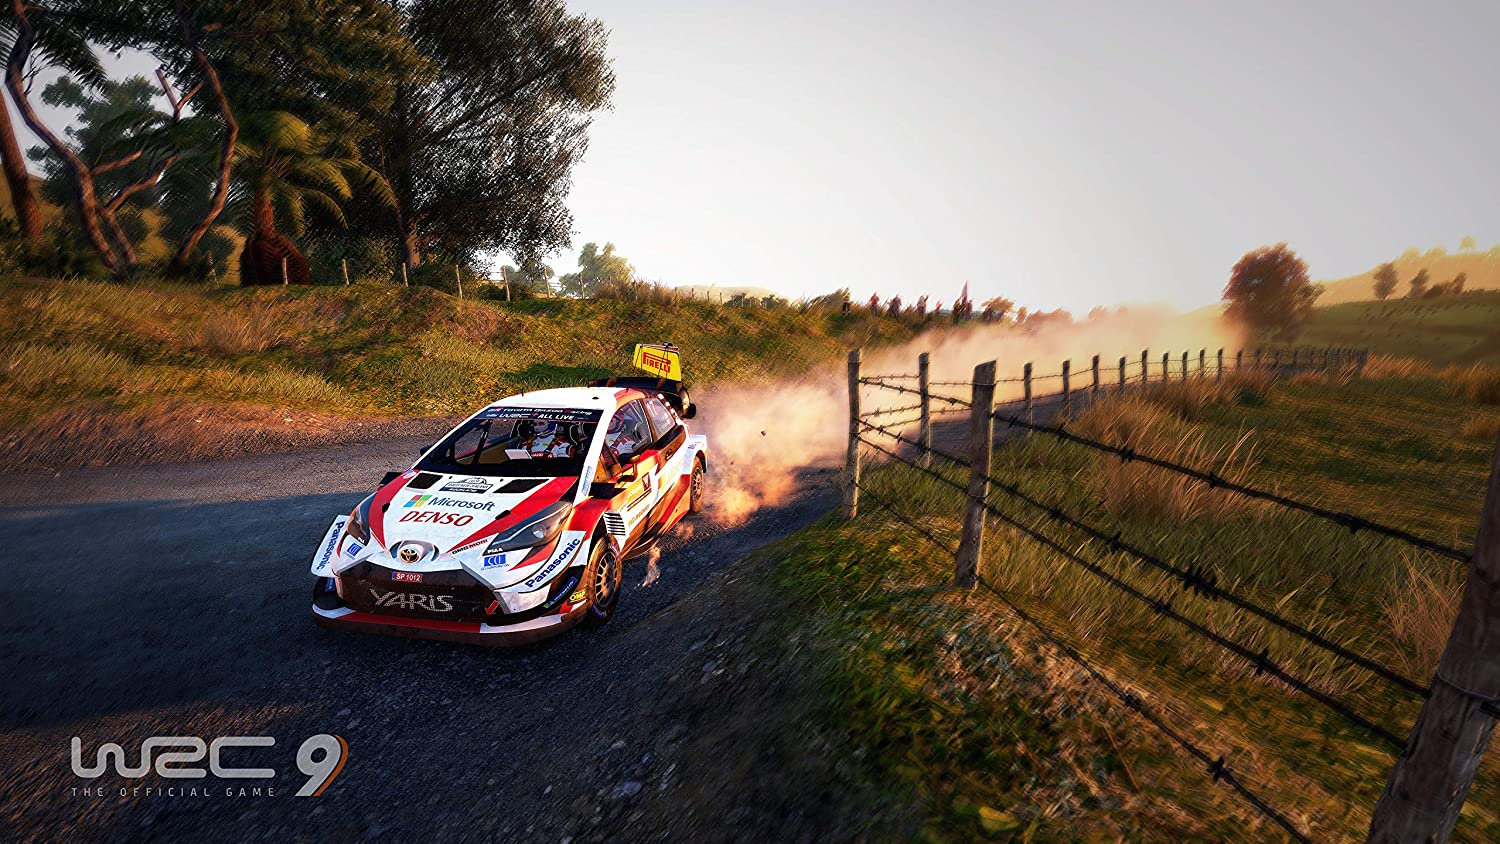 WRC 9: The Official Game - Nintendo Switch